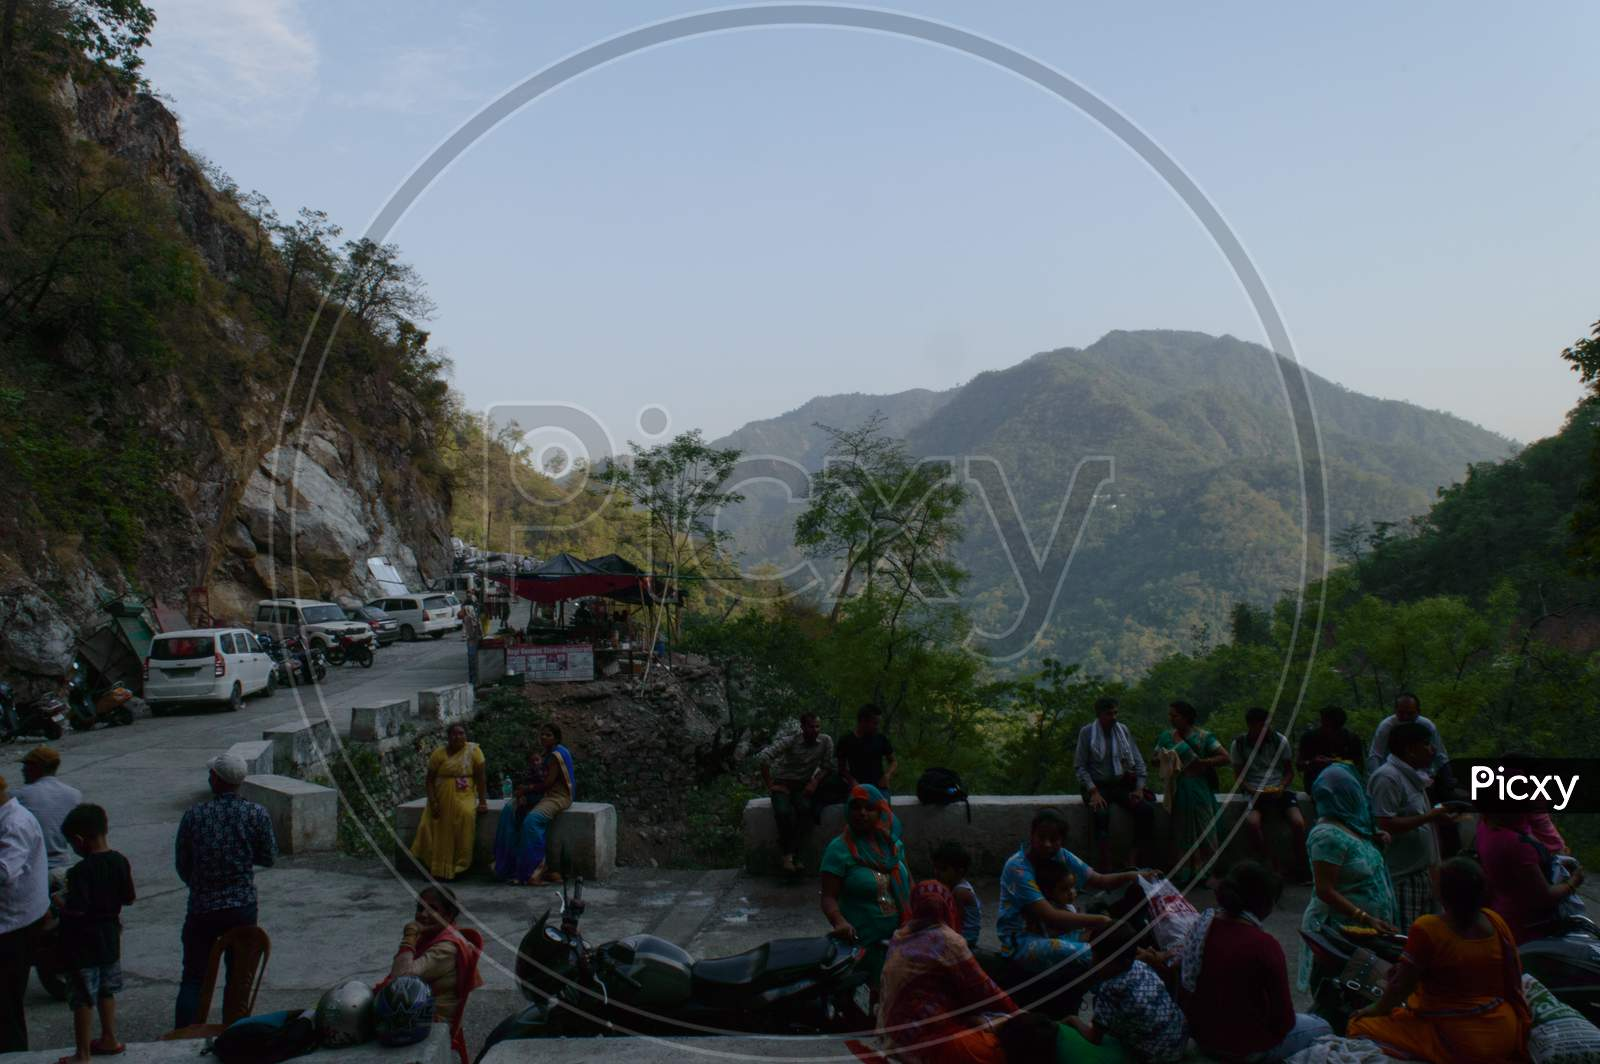 The View Of Mountain And Population Who Is Going To Trek And Destroy The Beauty Of Nature Towards The Famous Neer Waterfall, Rishikesh, Uttarakhand, India.